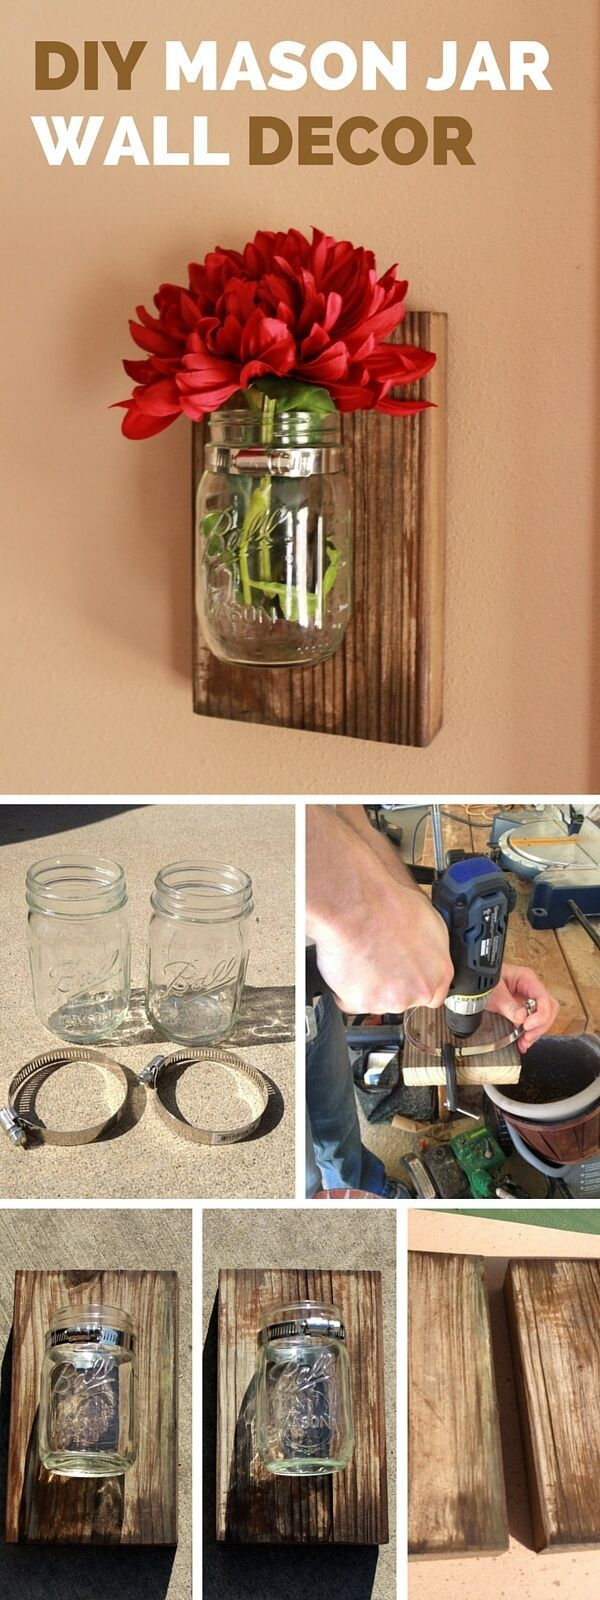 39 DIY rustic home decor ideas that you can make yourself - home decors -  39 DIY rustic home decor ideas that you can make yourself The rustic